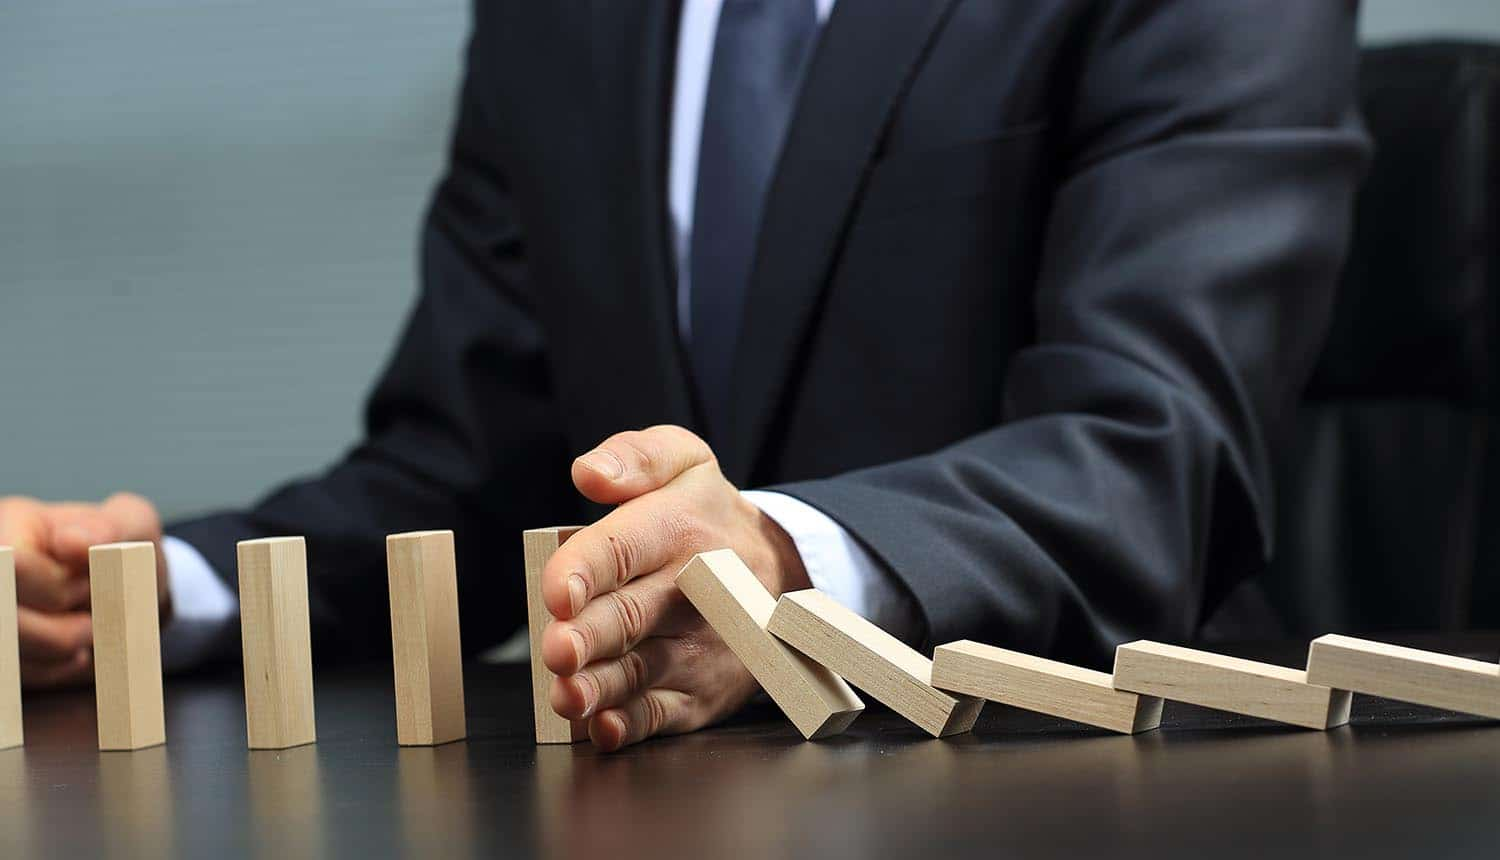 Hand stopping wooden blocks from falling showing the need for companies to measure data privacy risks